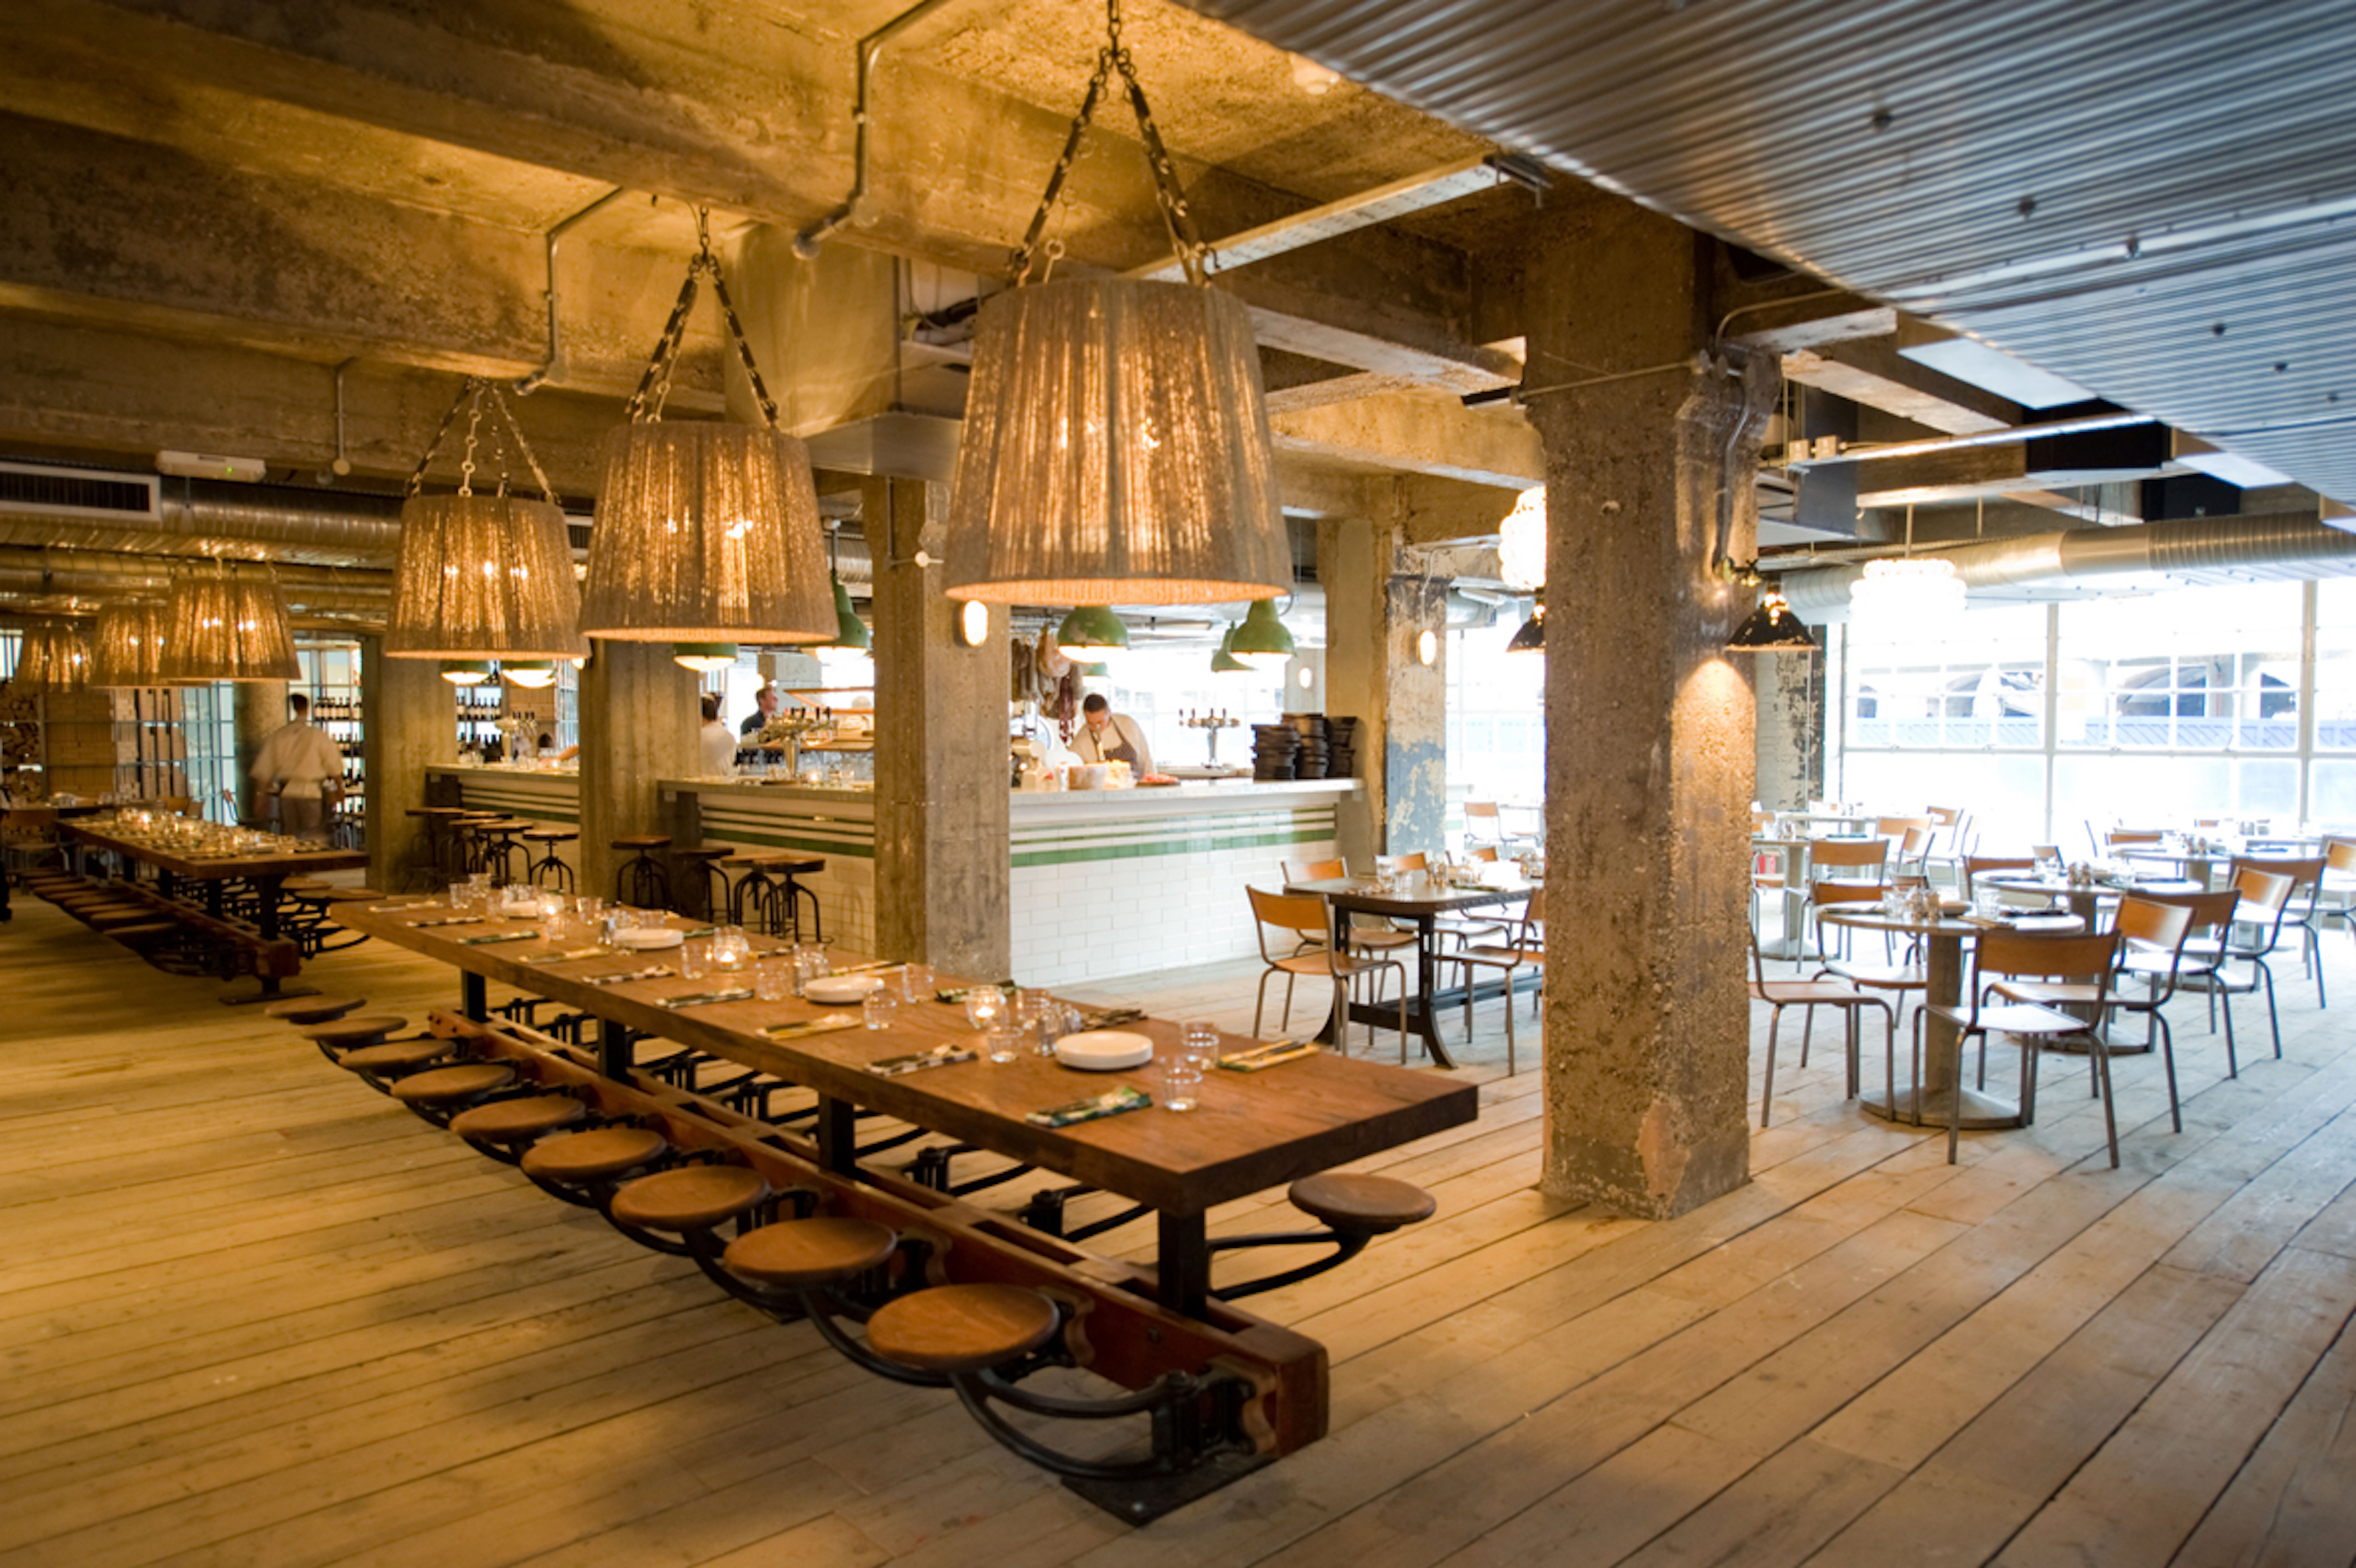 16 Restaurants Great For A Group Dinner In London - London - The Infatuation